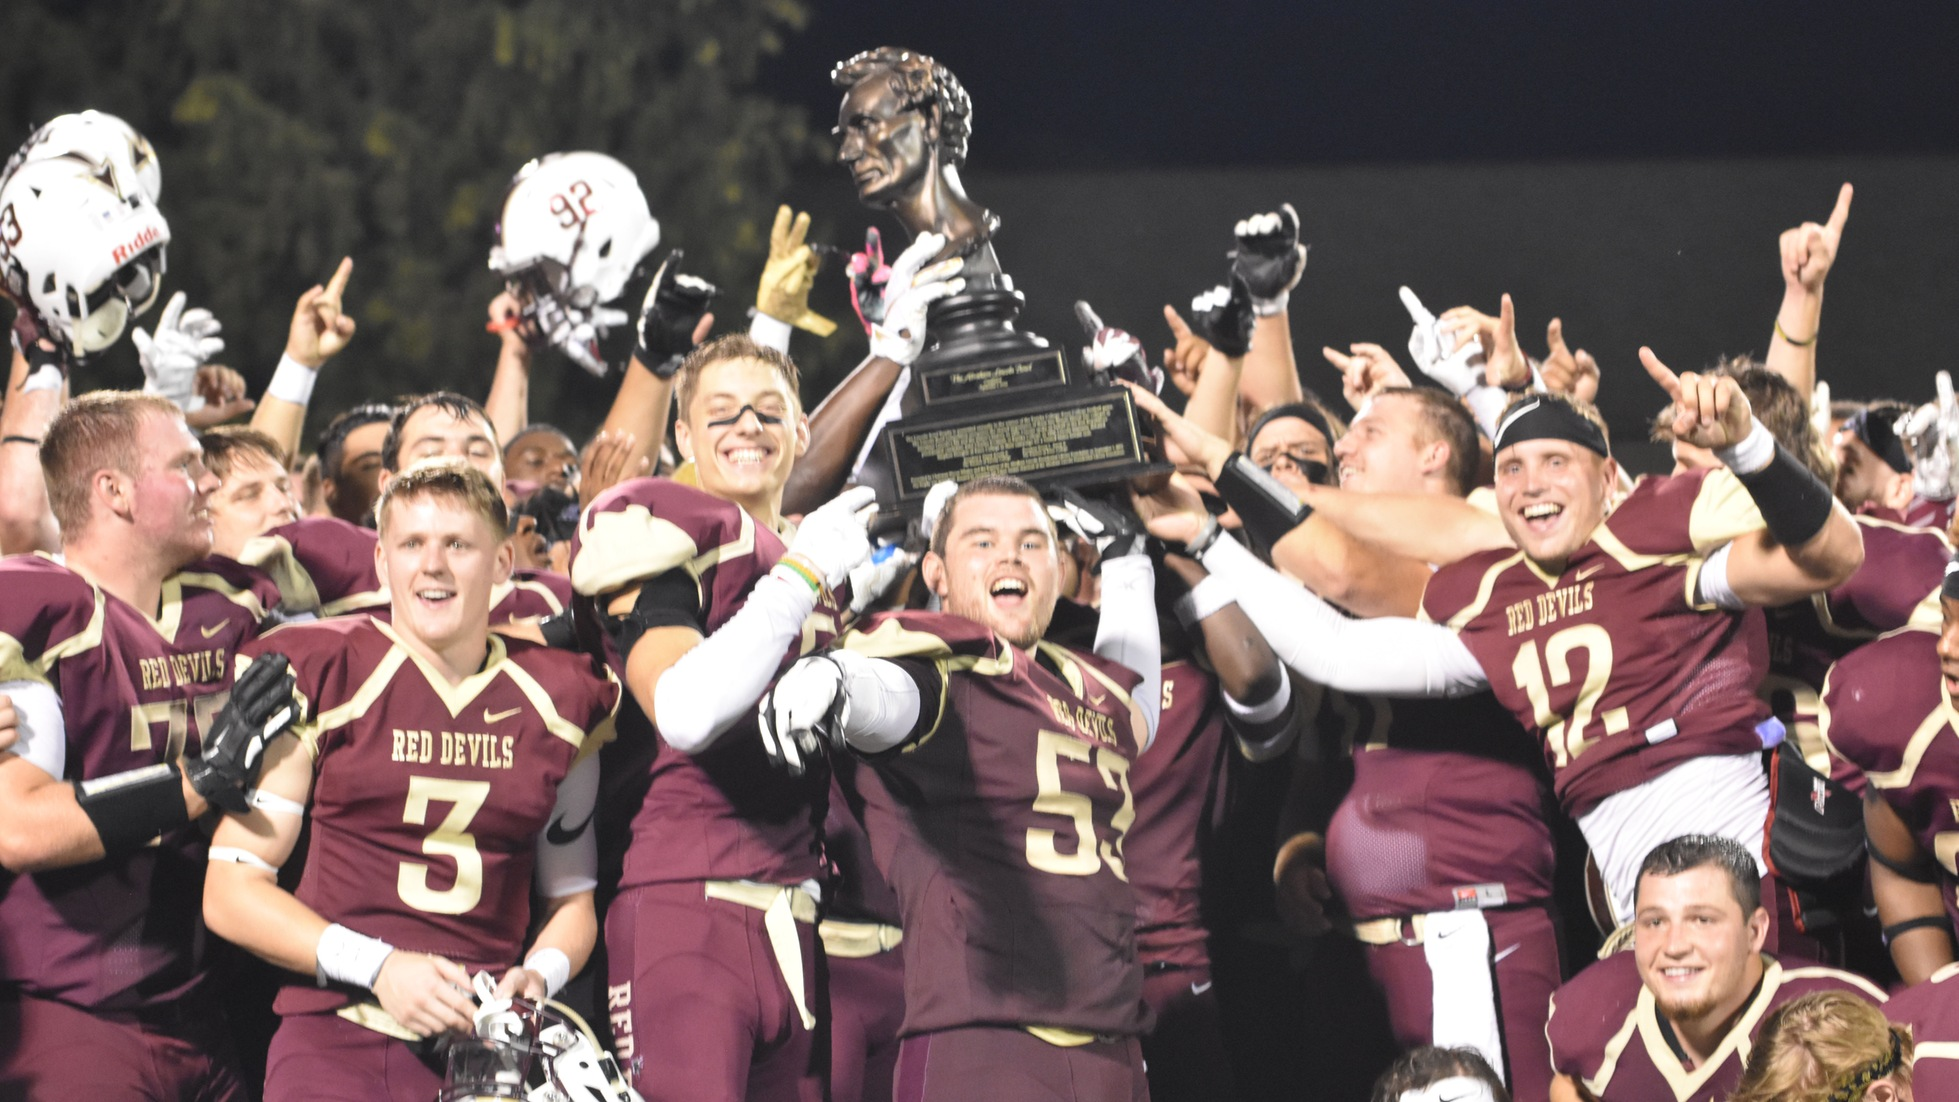 Red Devils Take Down Knox, Seize Lincoln Bowl, 42-28